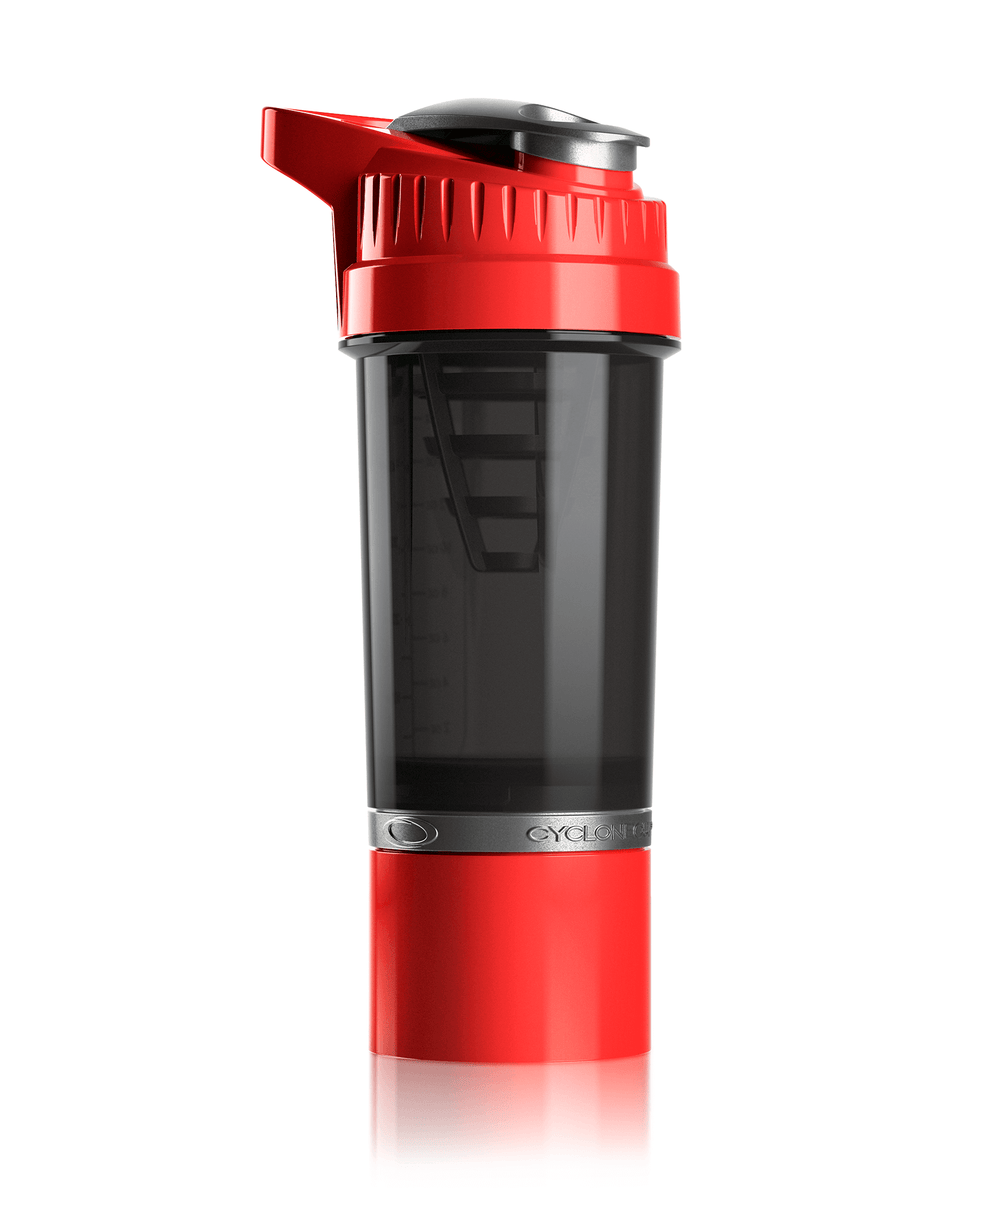 Cyclone Cup Cyclone22 Red 22 oz 3